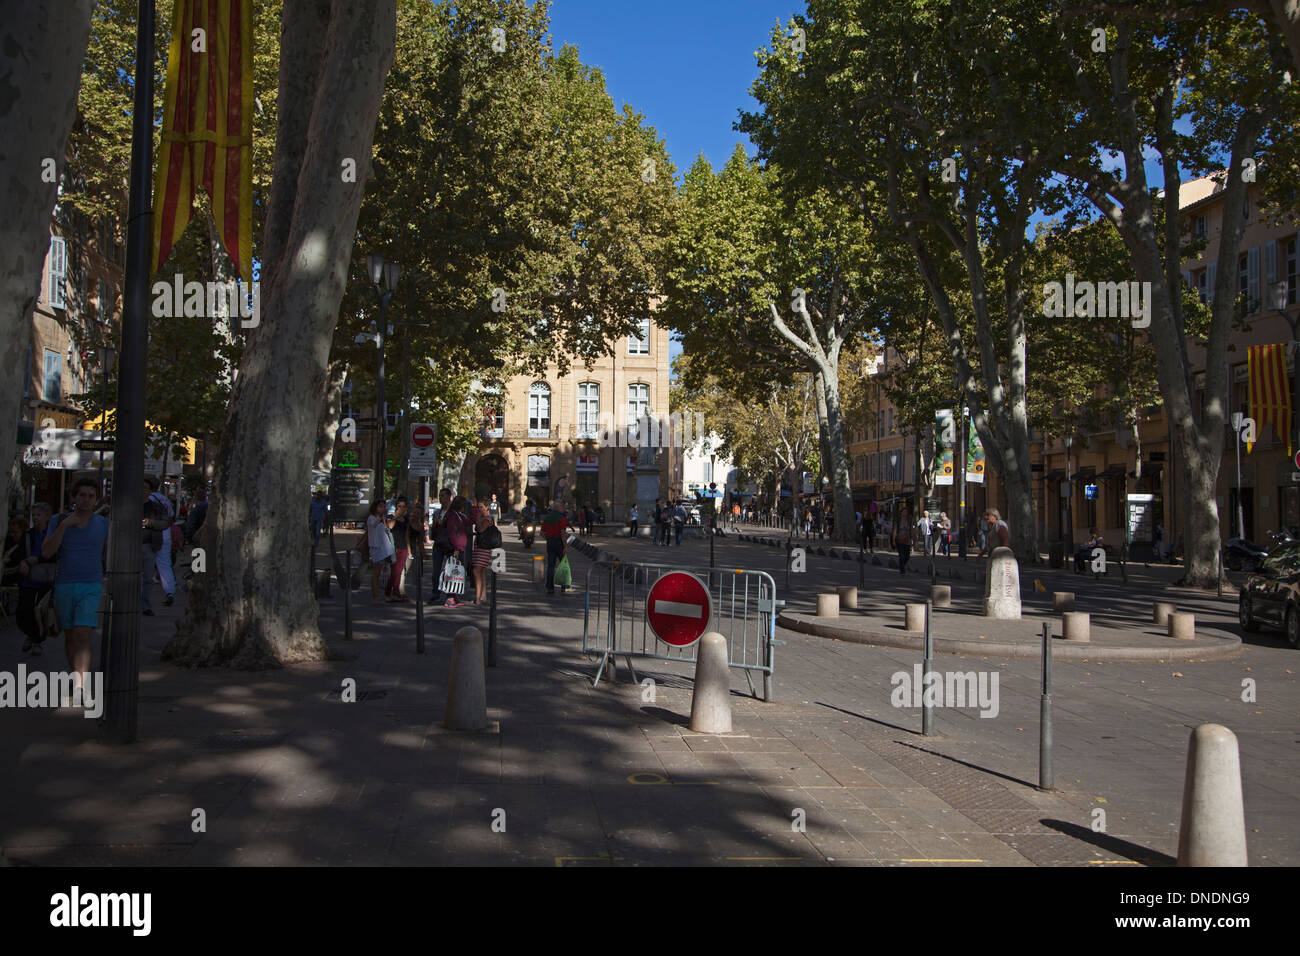 The Cours Mirabeau at Aix-en Provence - Stock Image